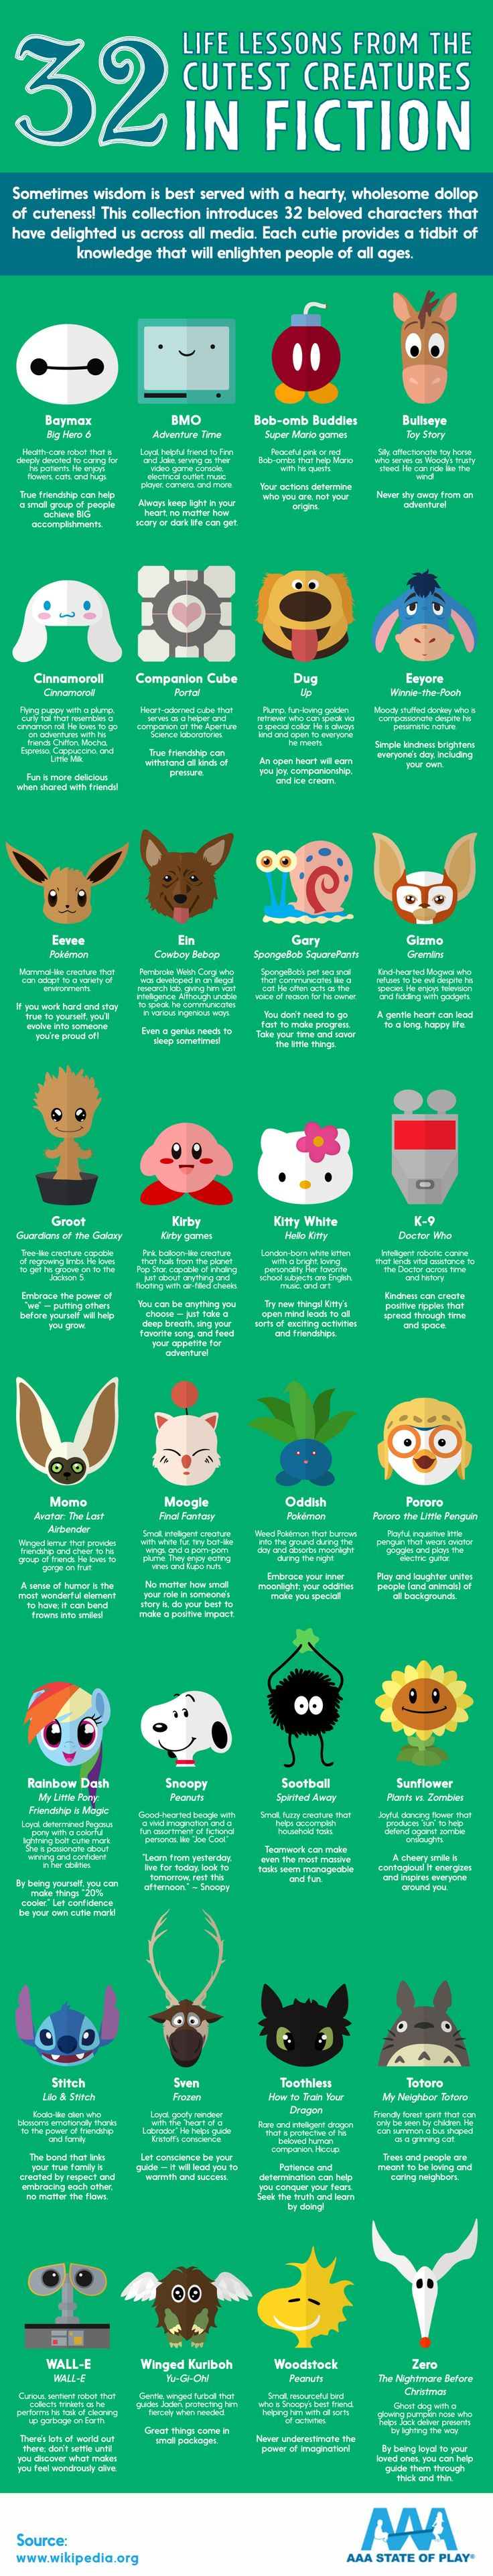 32 Life Lessons from the Cutest Creatures in Fiction #infographic #Entertainment #Fiction